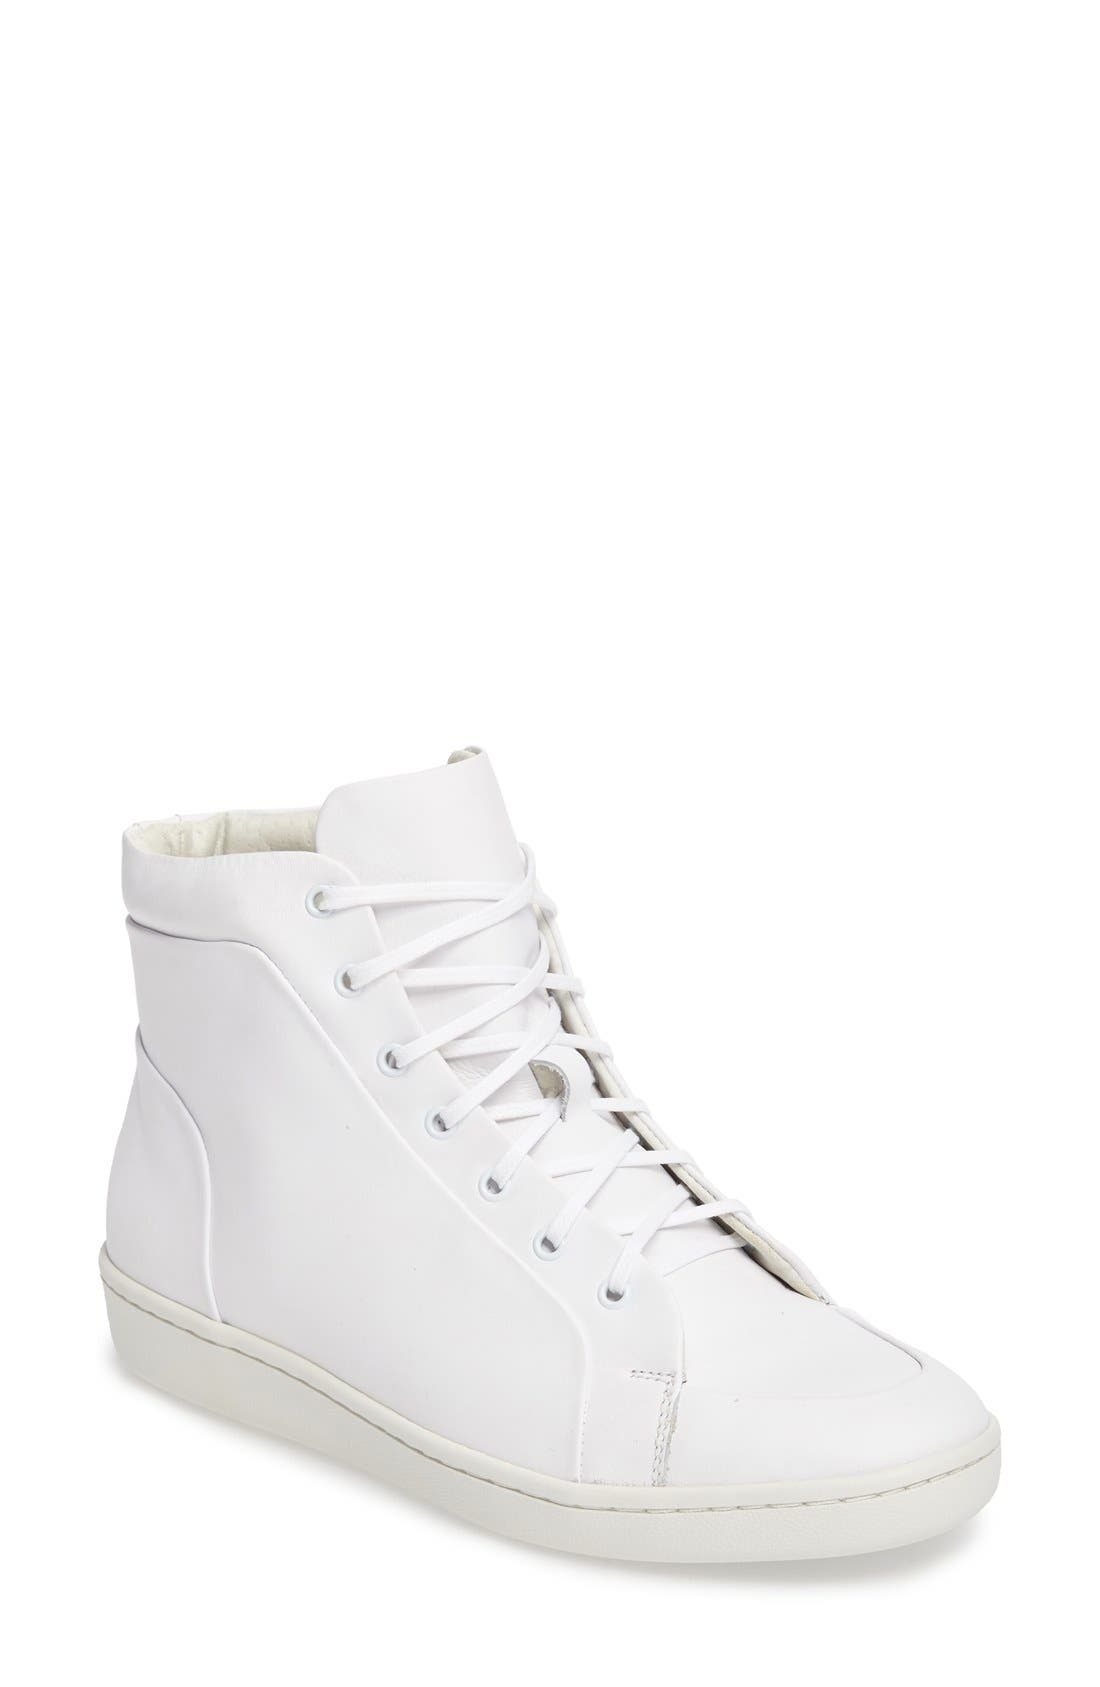 Molly High Top Sneaker,                         Main,                         color, White Leather